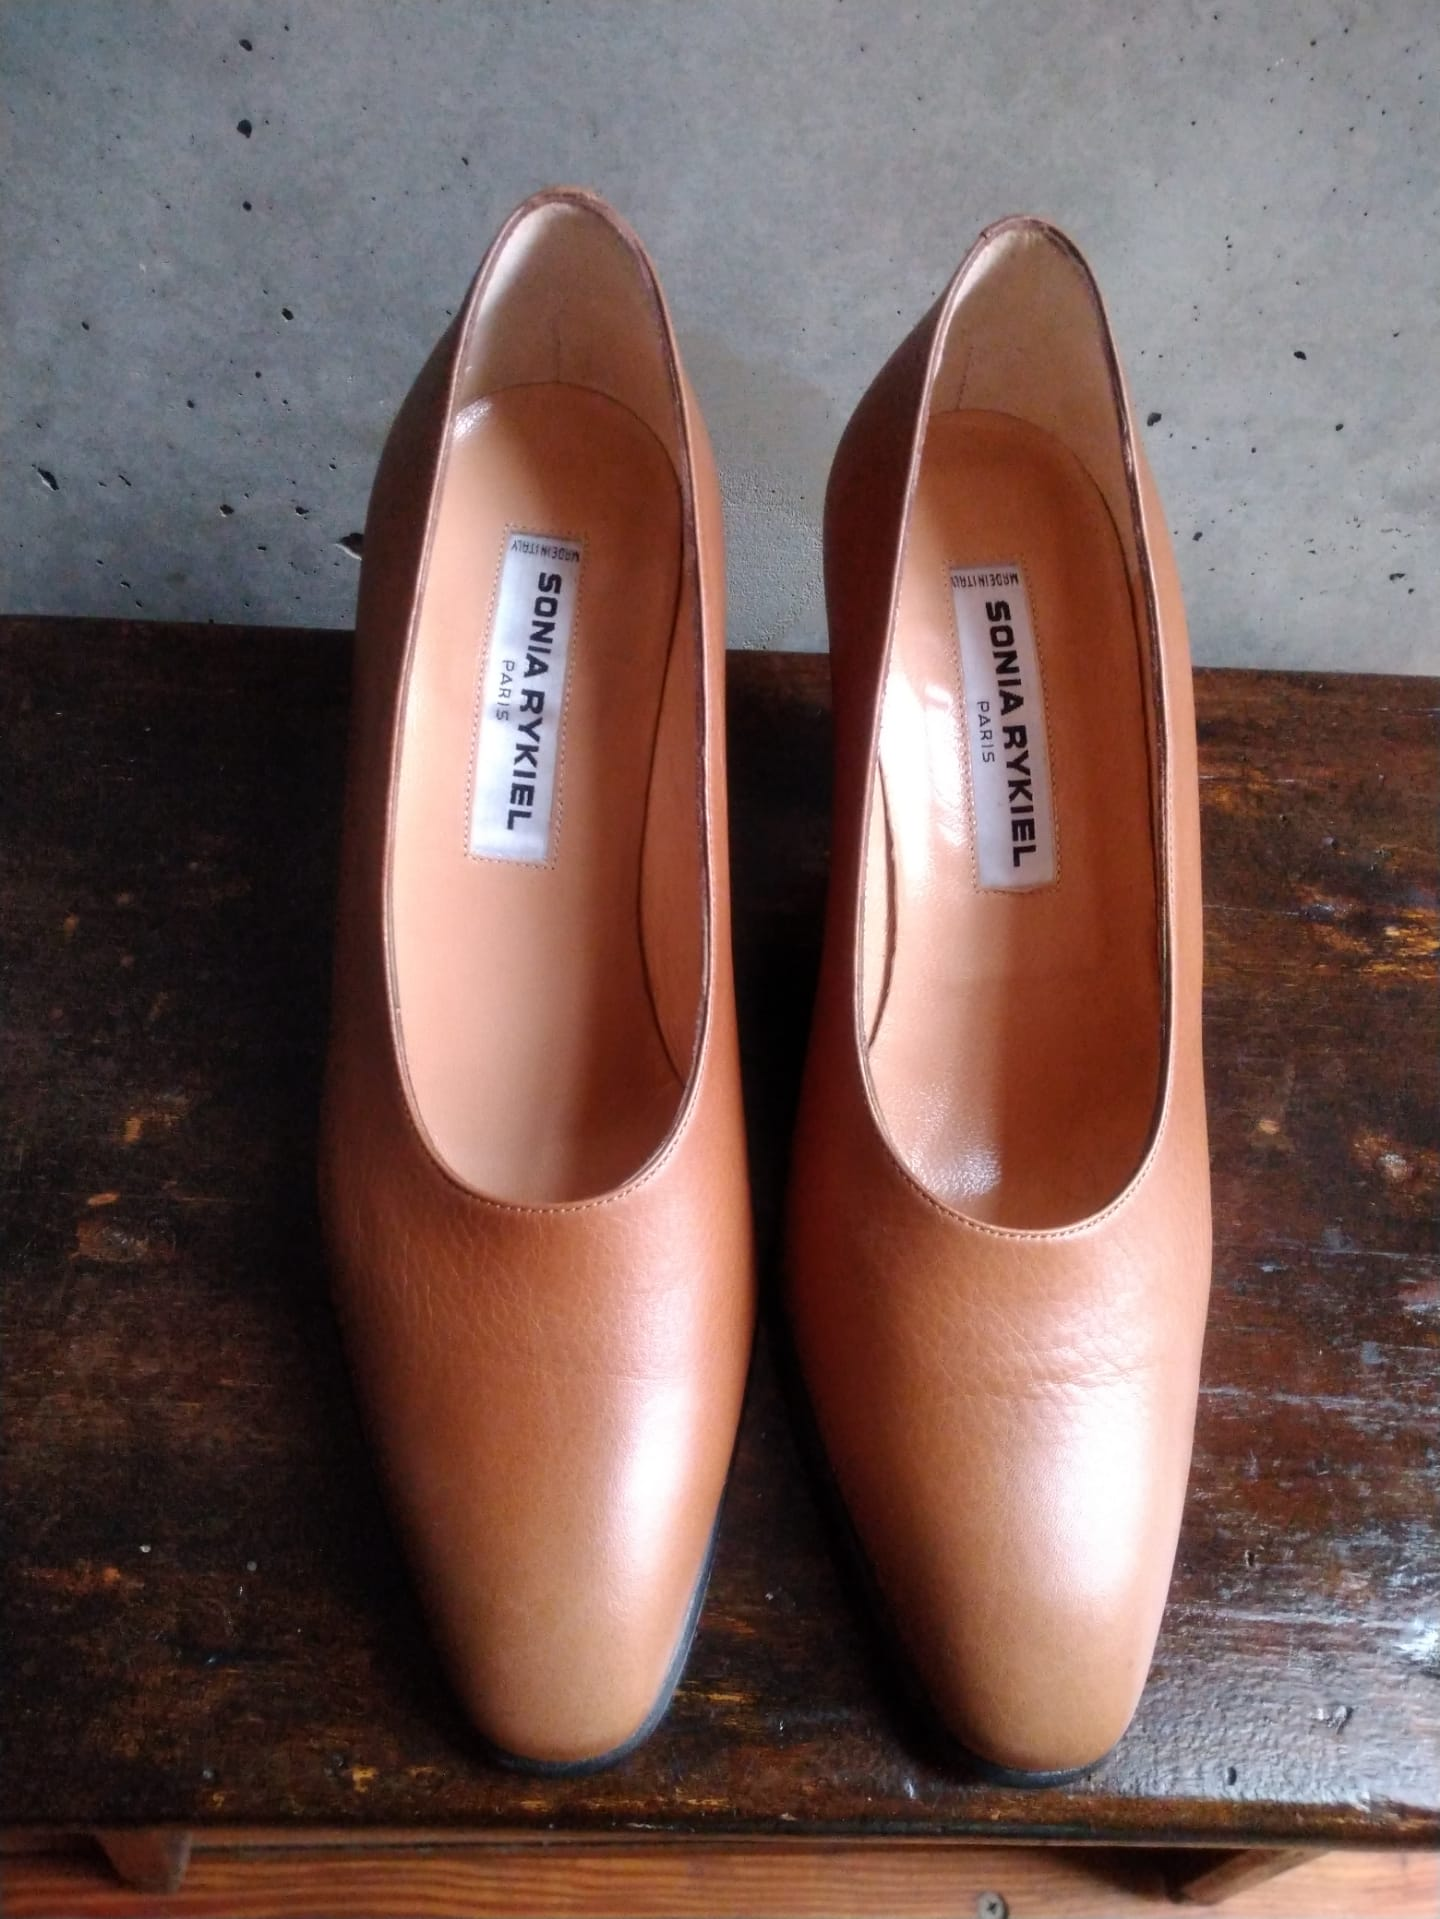 Sonia Rykiel brown pumps